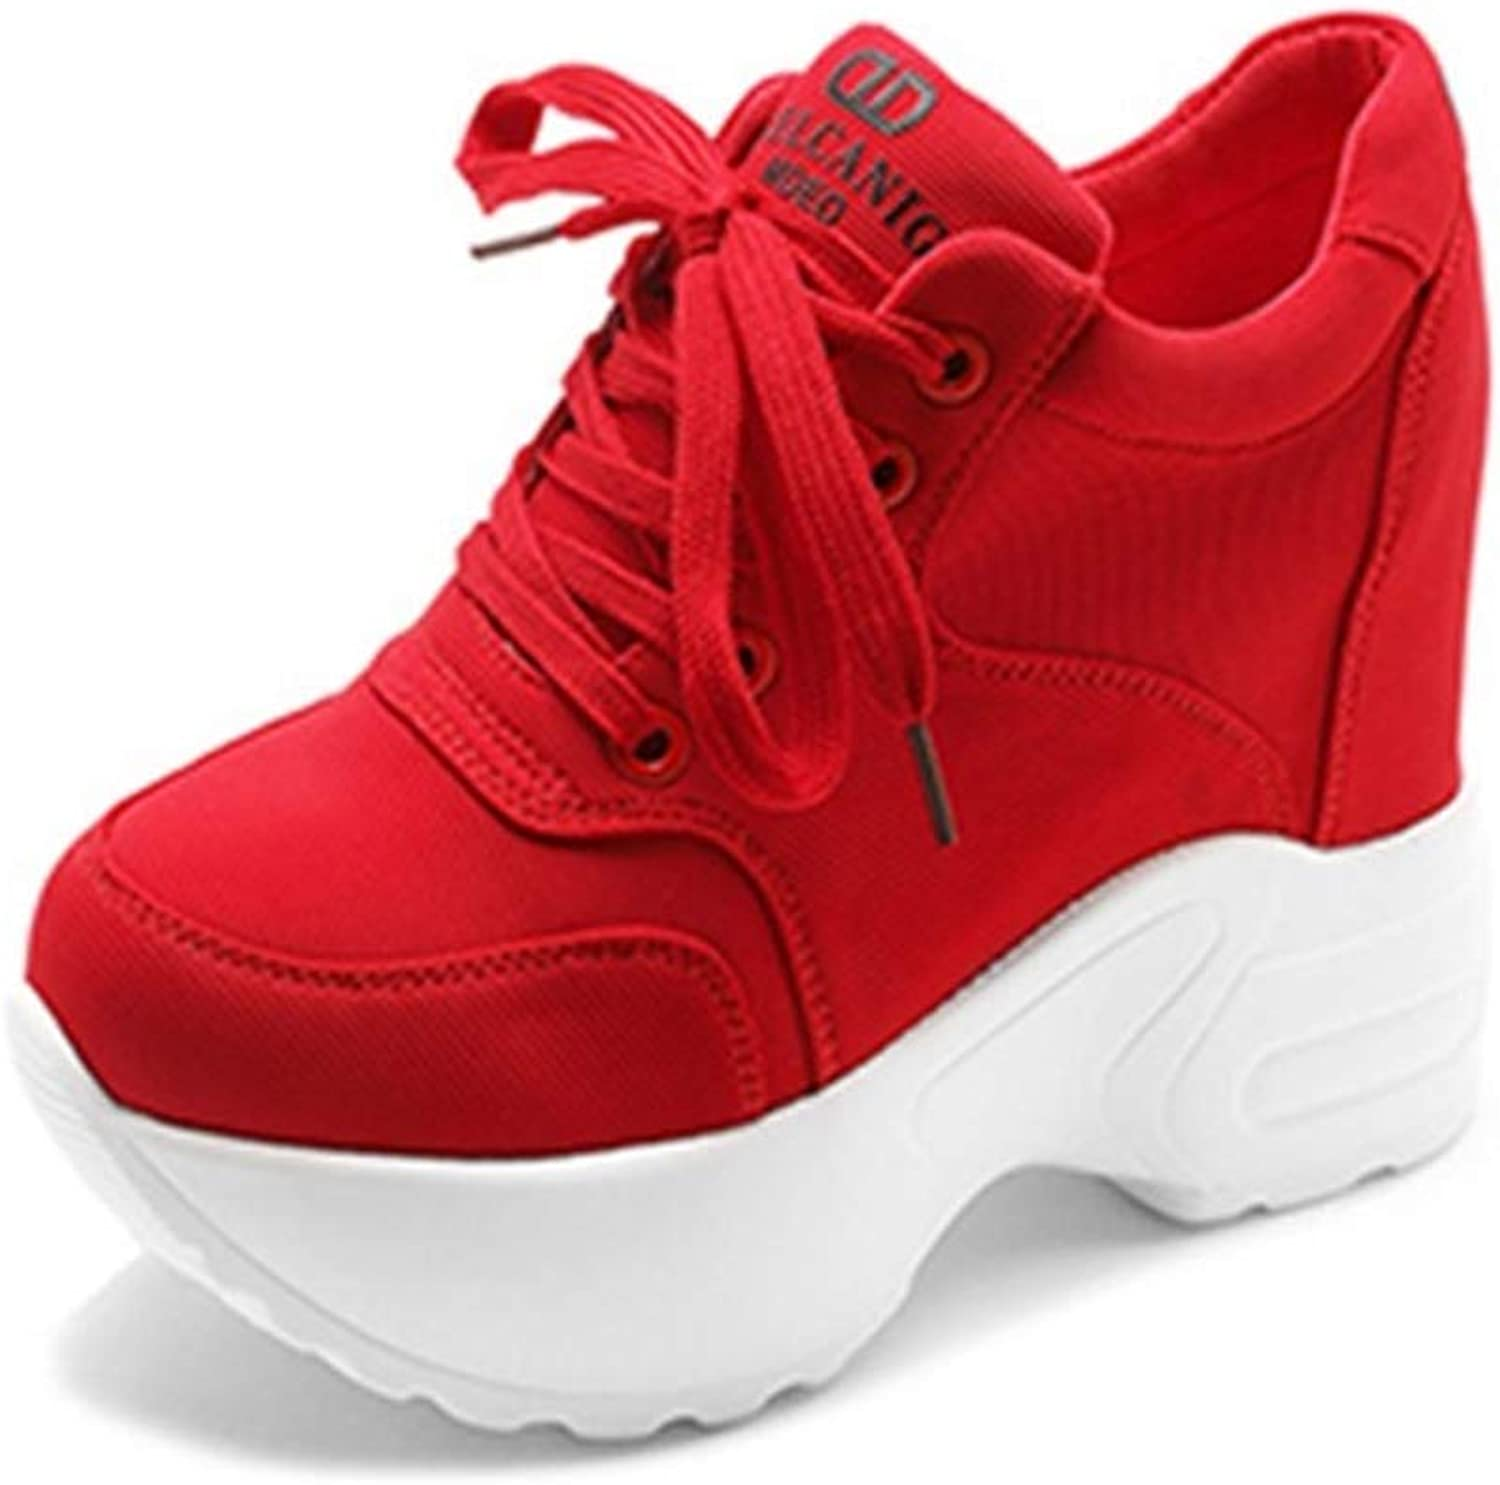 T-JULY Women Mesh Casual Platform Trainers White shoes Female Autumn Wedges Breathable Height Increasing shoes